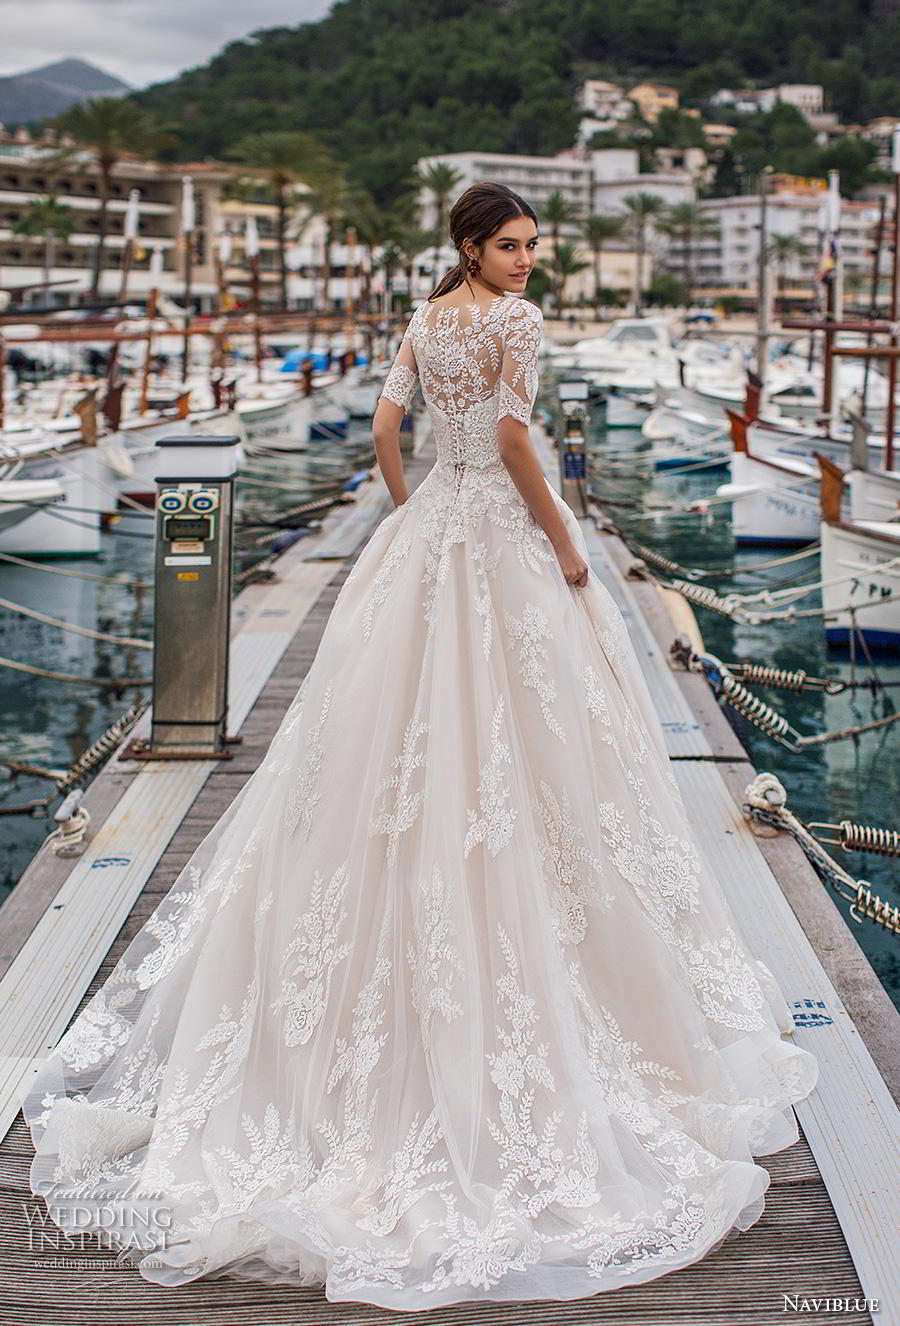 f453570e03f naviblue 2019 bridal half sleeves illusion bateau sweetheart neckline heavily  embellished bodice hem a line wedding